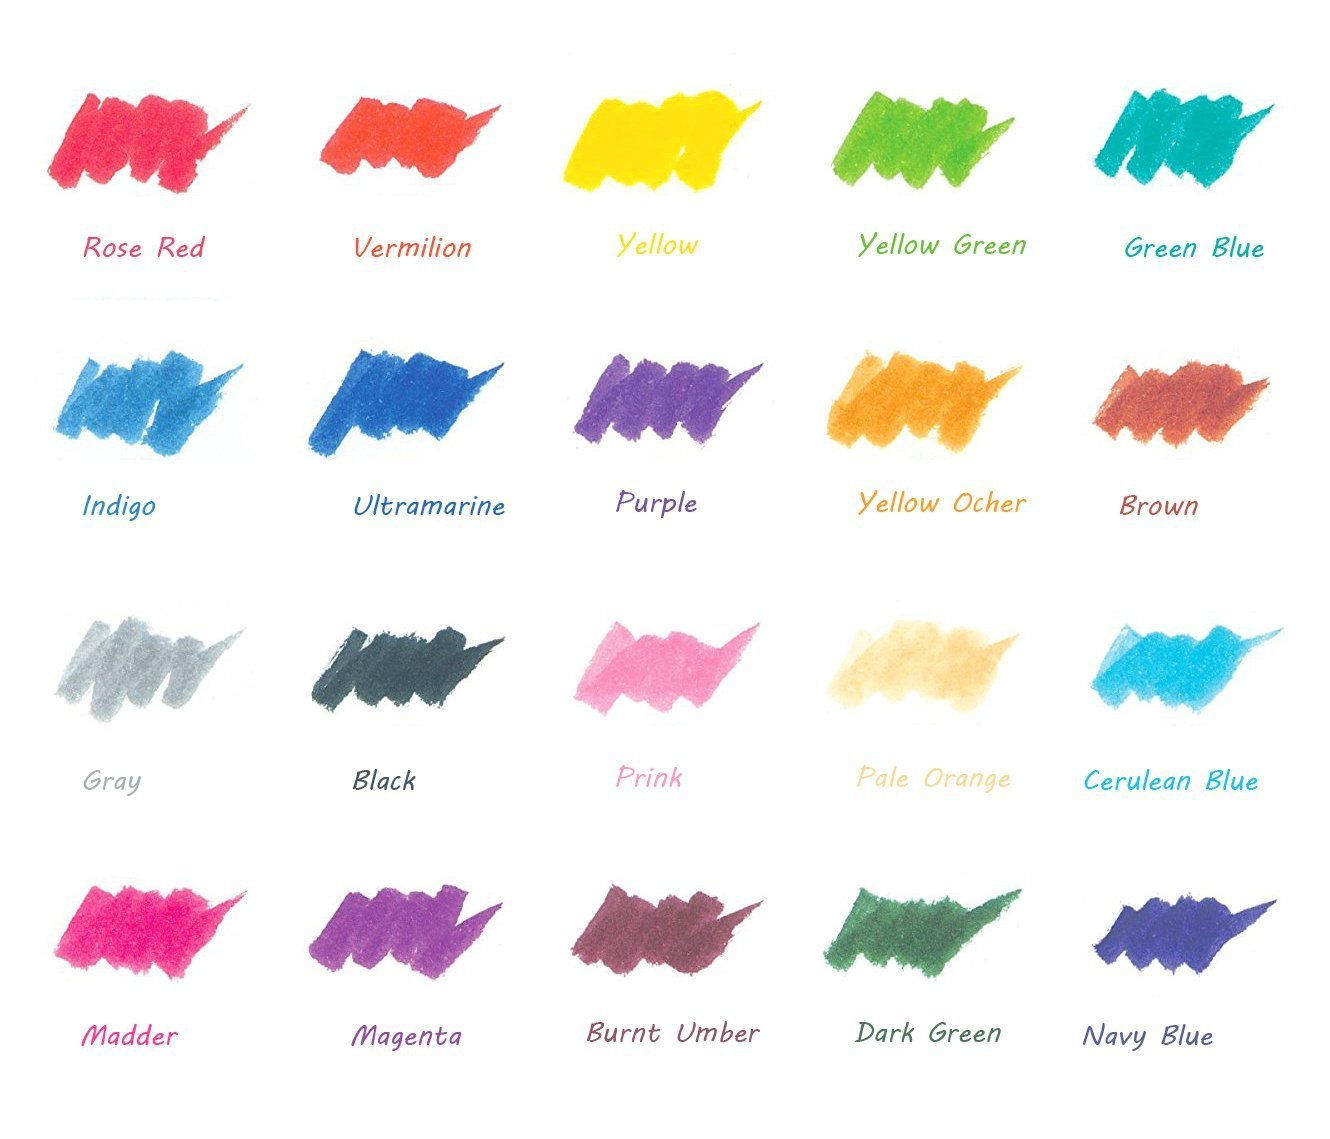 Manga Comic Calligraphy Watercolor Paints Soft Flexible Tip for Adult Coloring Books Watercolor Brush Pens Ohuhu 20 Colors Water Color Painting Markers W// A Water Coloring Brush